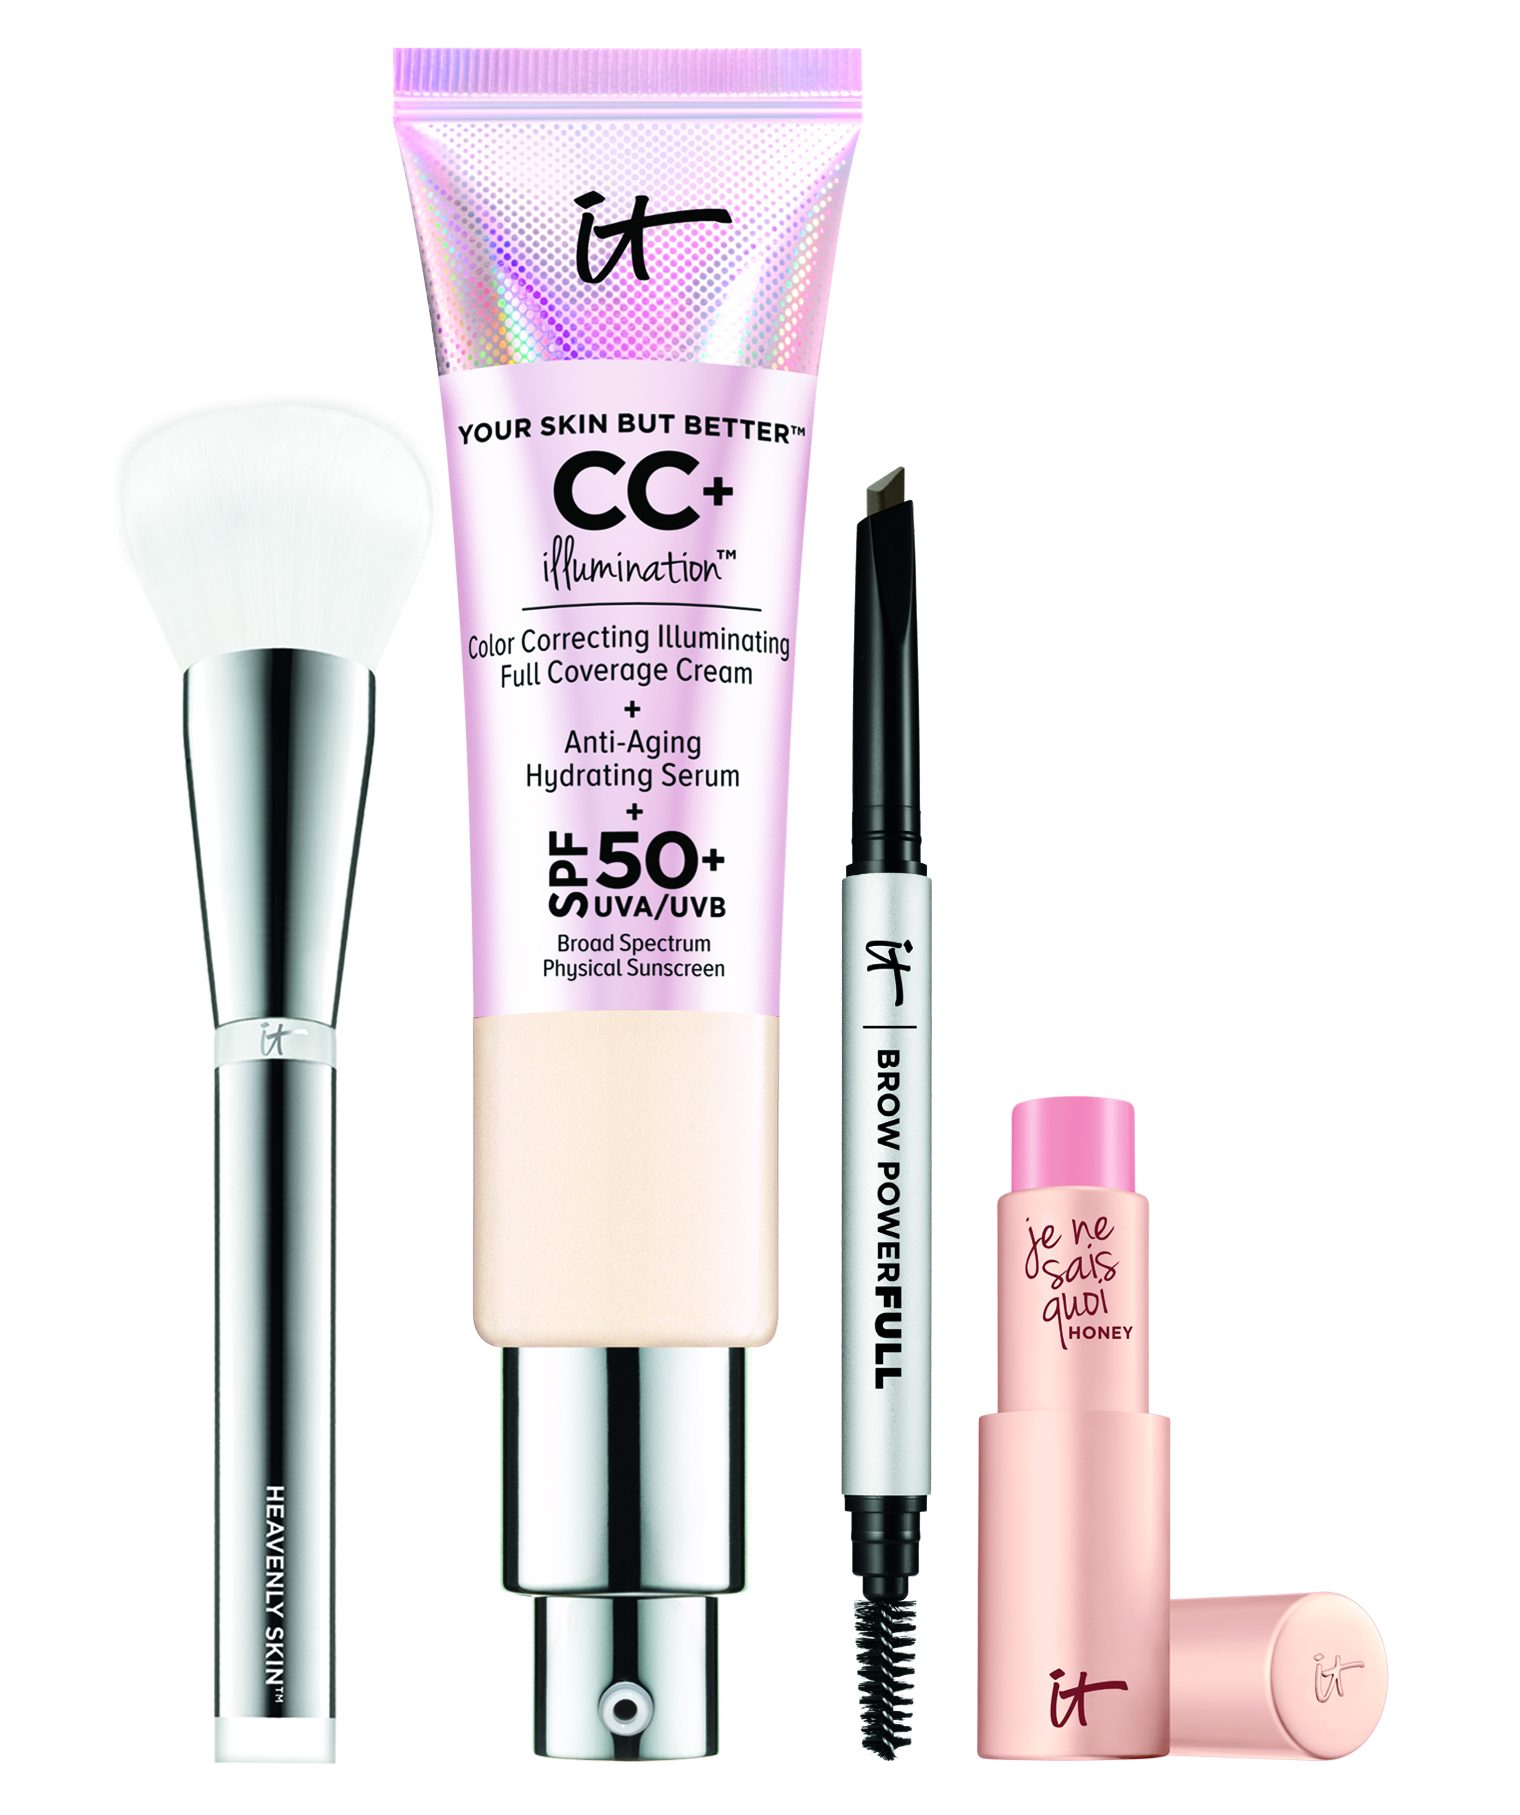 IT Cosmetics QVC Todays Special Value for March 2019 - 1 Day Only